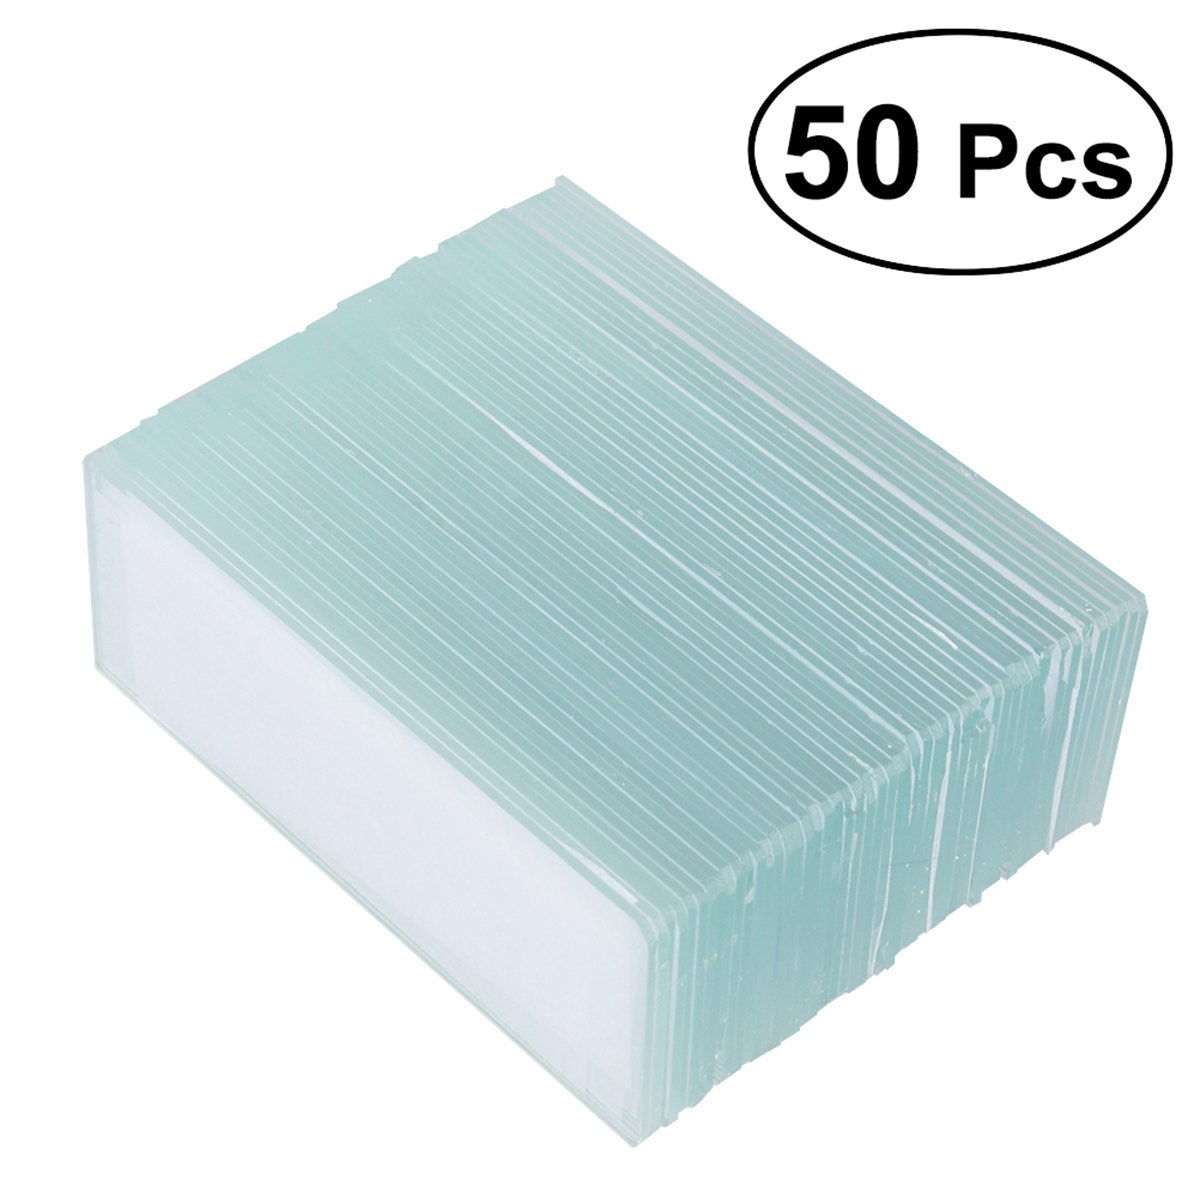 UKCOCO Microscope Blank Slides Square Cover Slips Cover Glass 50 Pieces Set